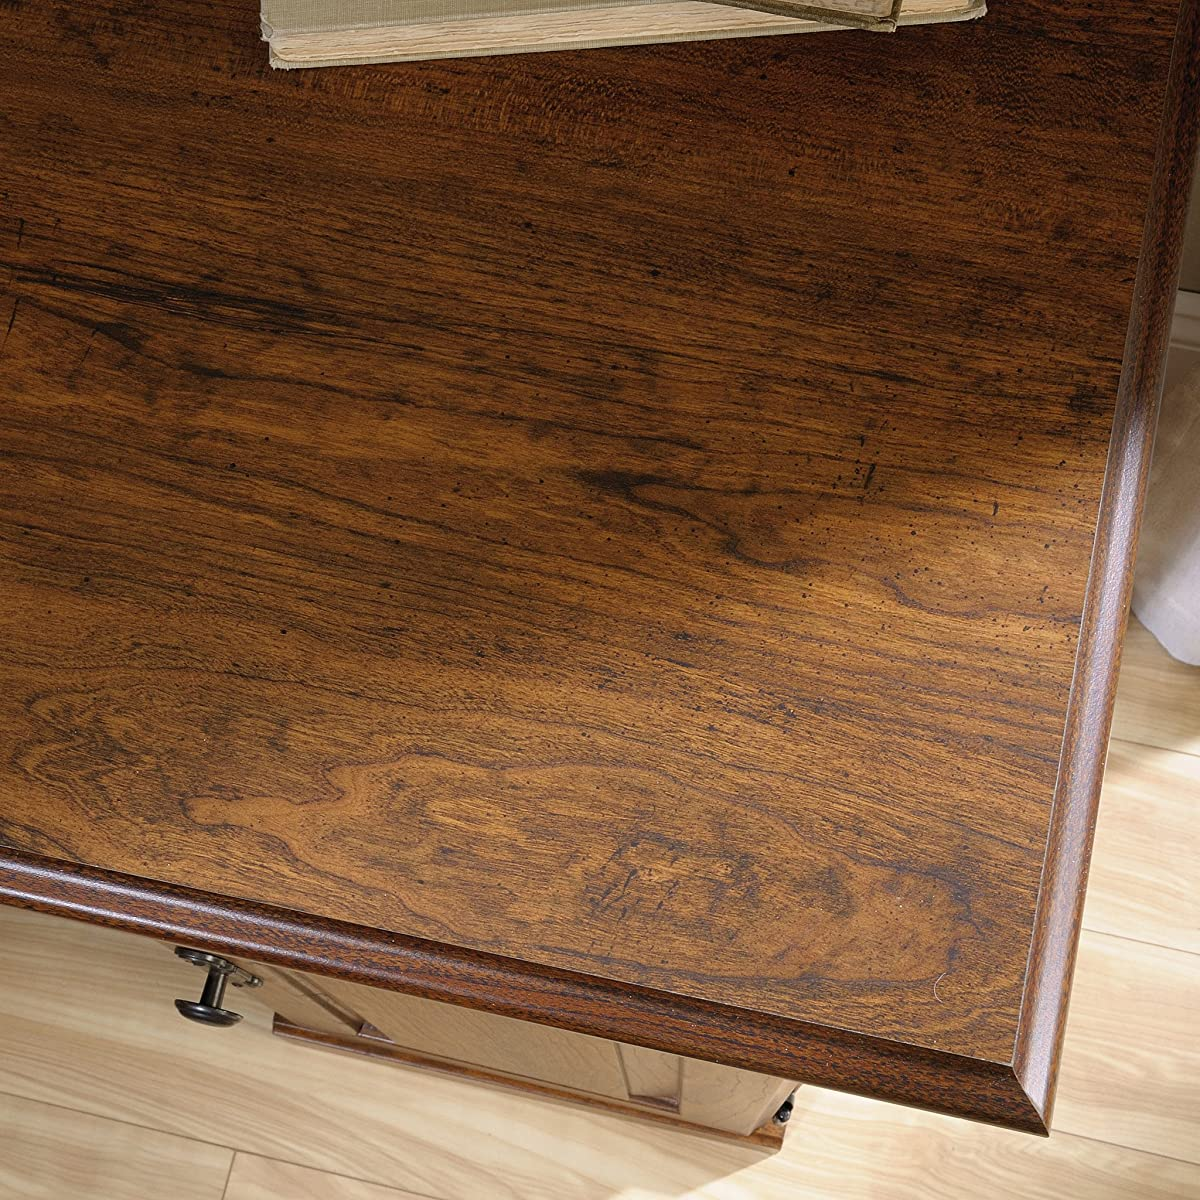 "SauderCarson Forge Side Table, L: 14.173"" x W: 22.441"" x H: 24.646"", Washington Cherry"